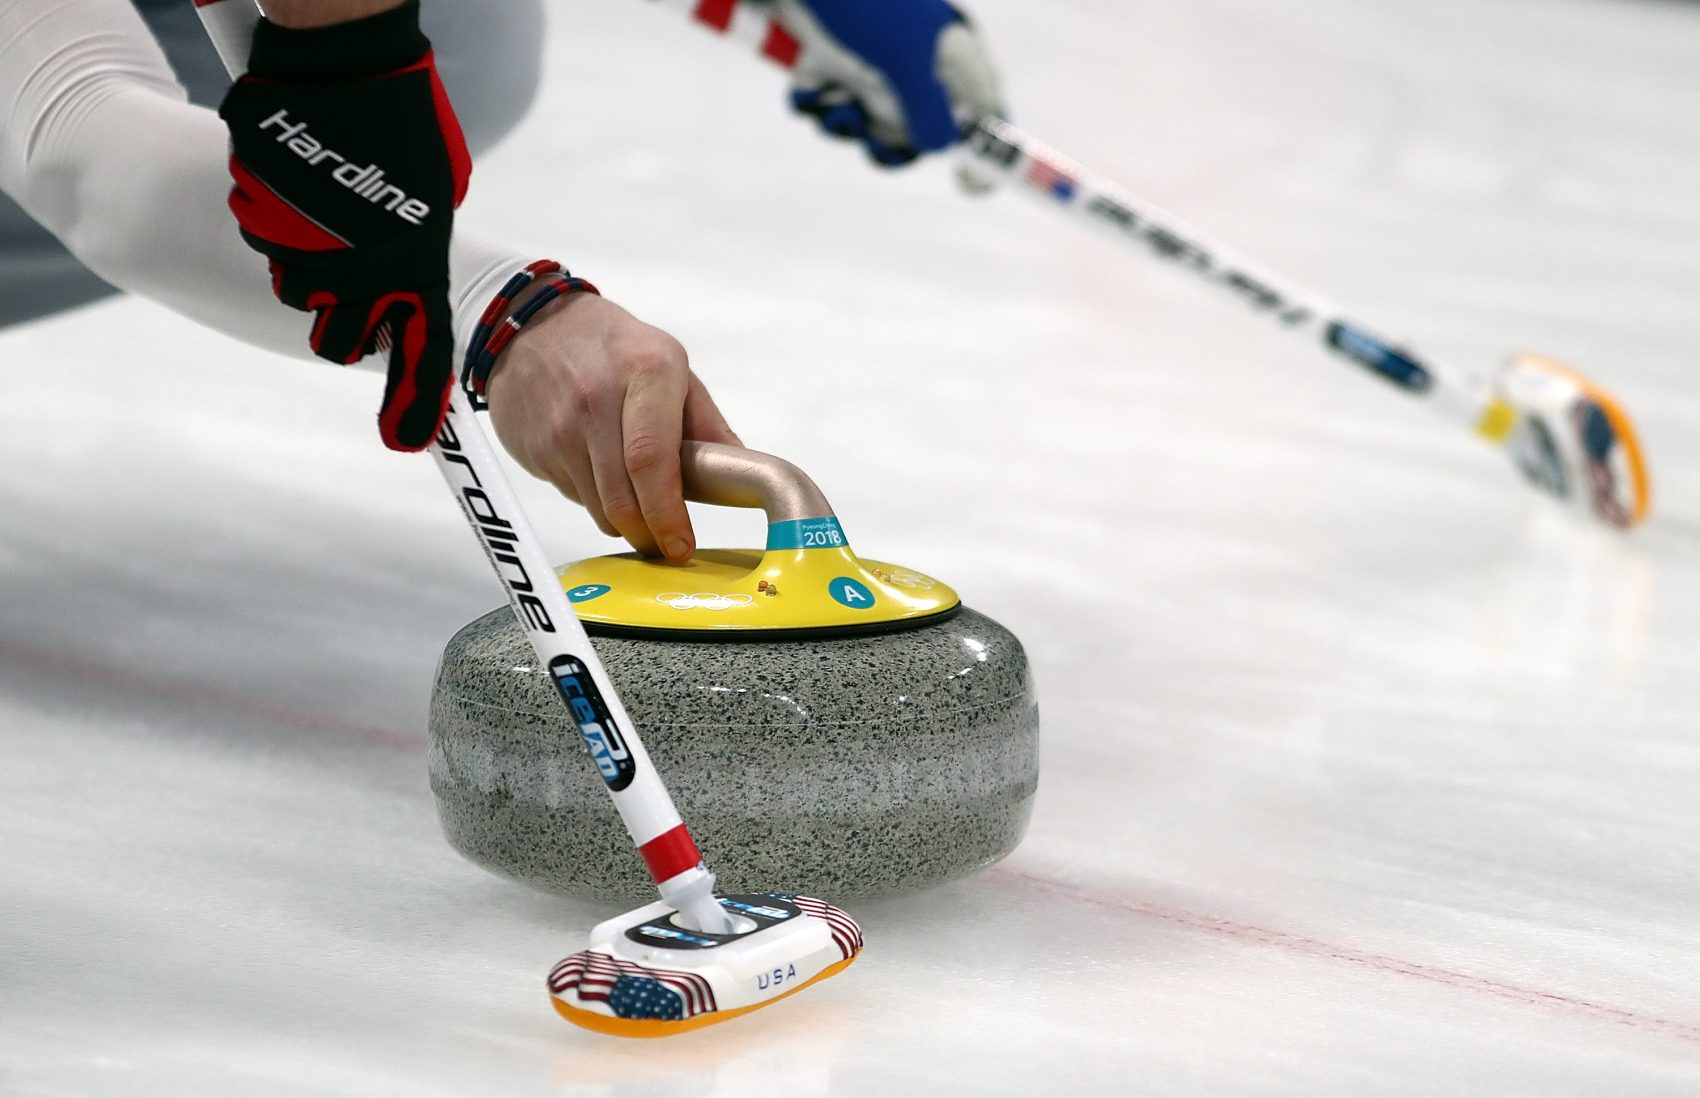 Kays of Scotland has produced all of the curling stones used in this year's Winter Olympics. (Ronald Martinez/Getty Images)